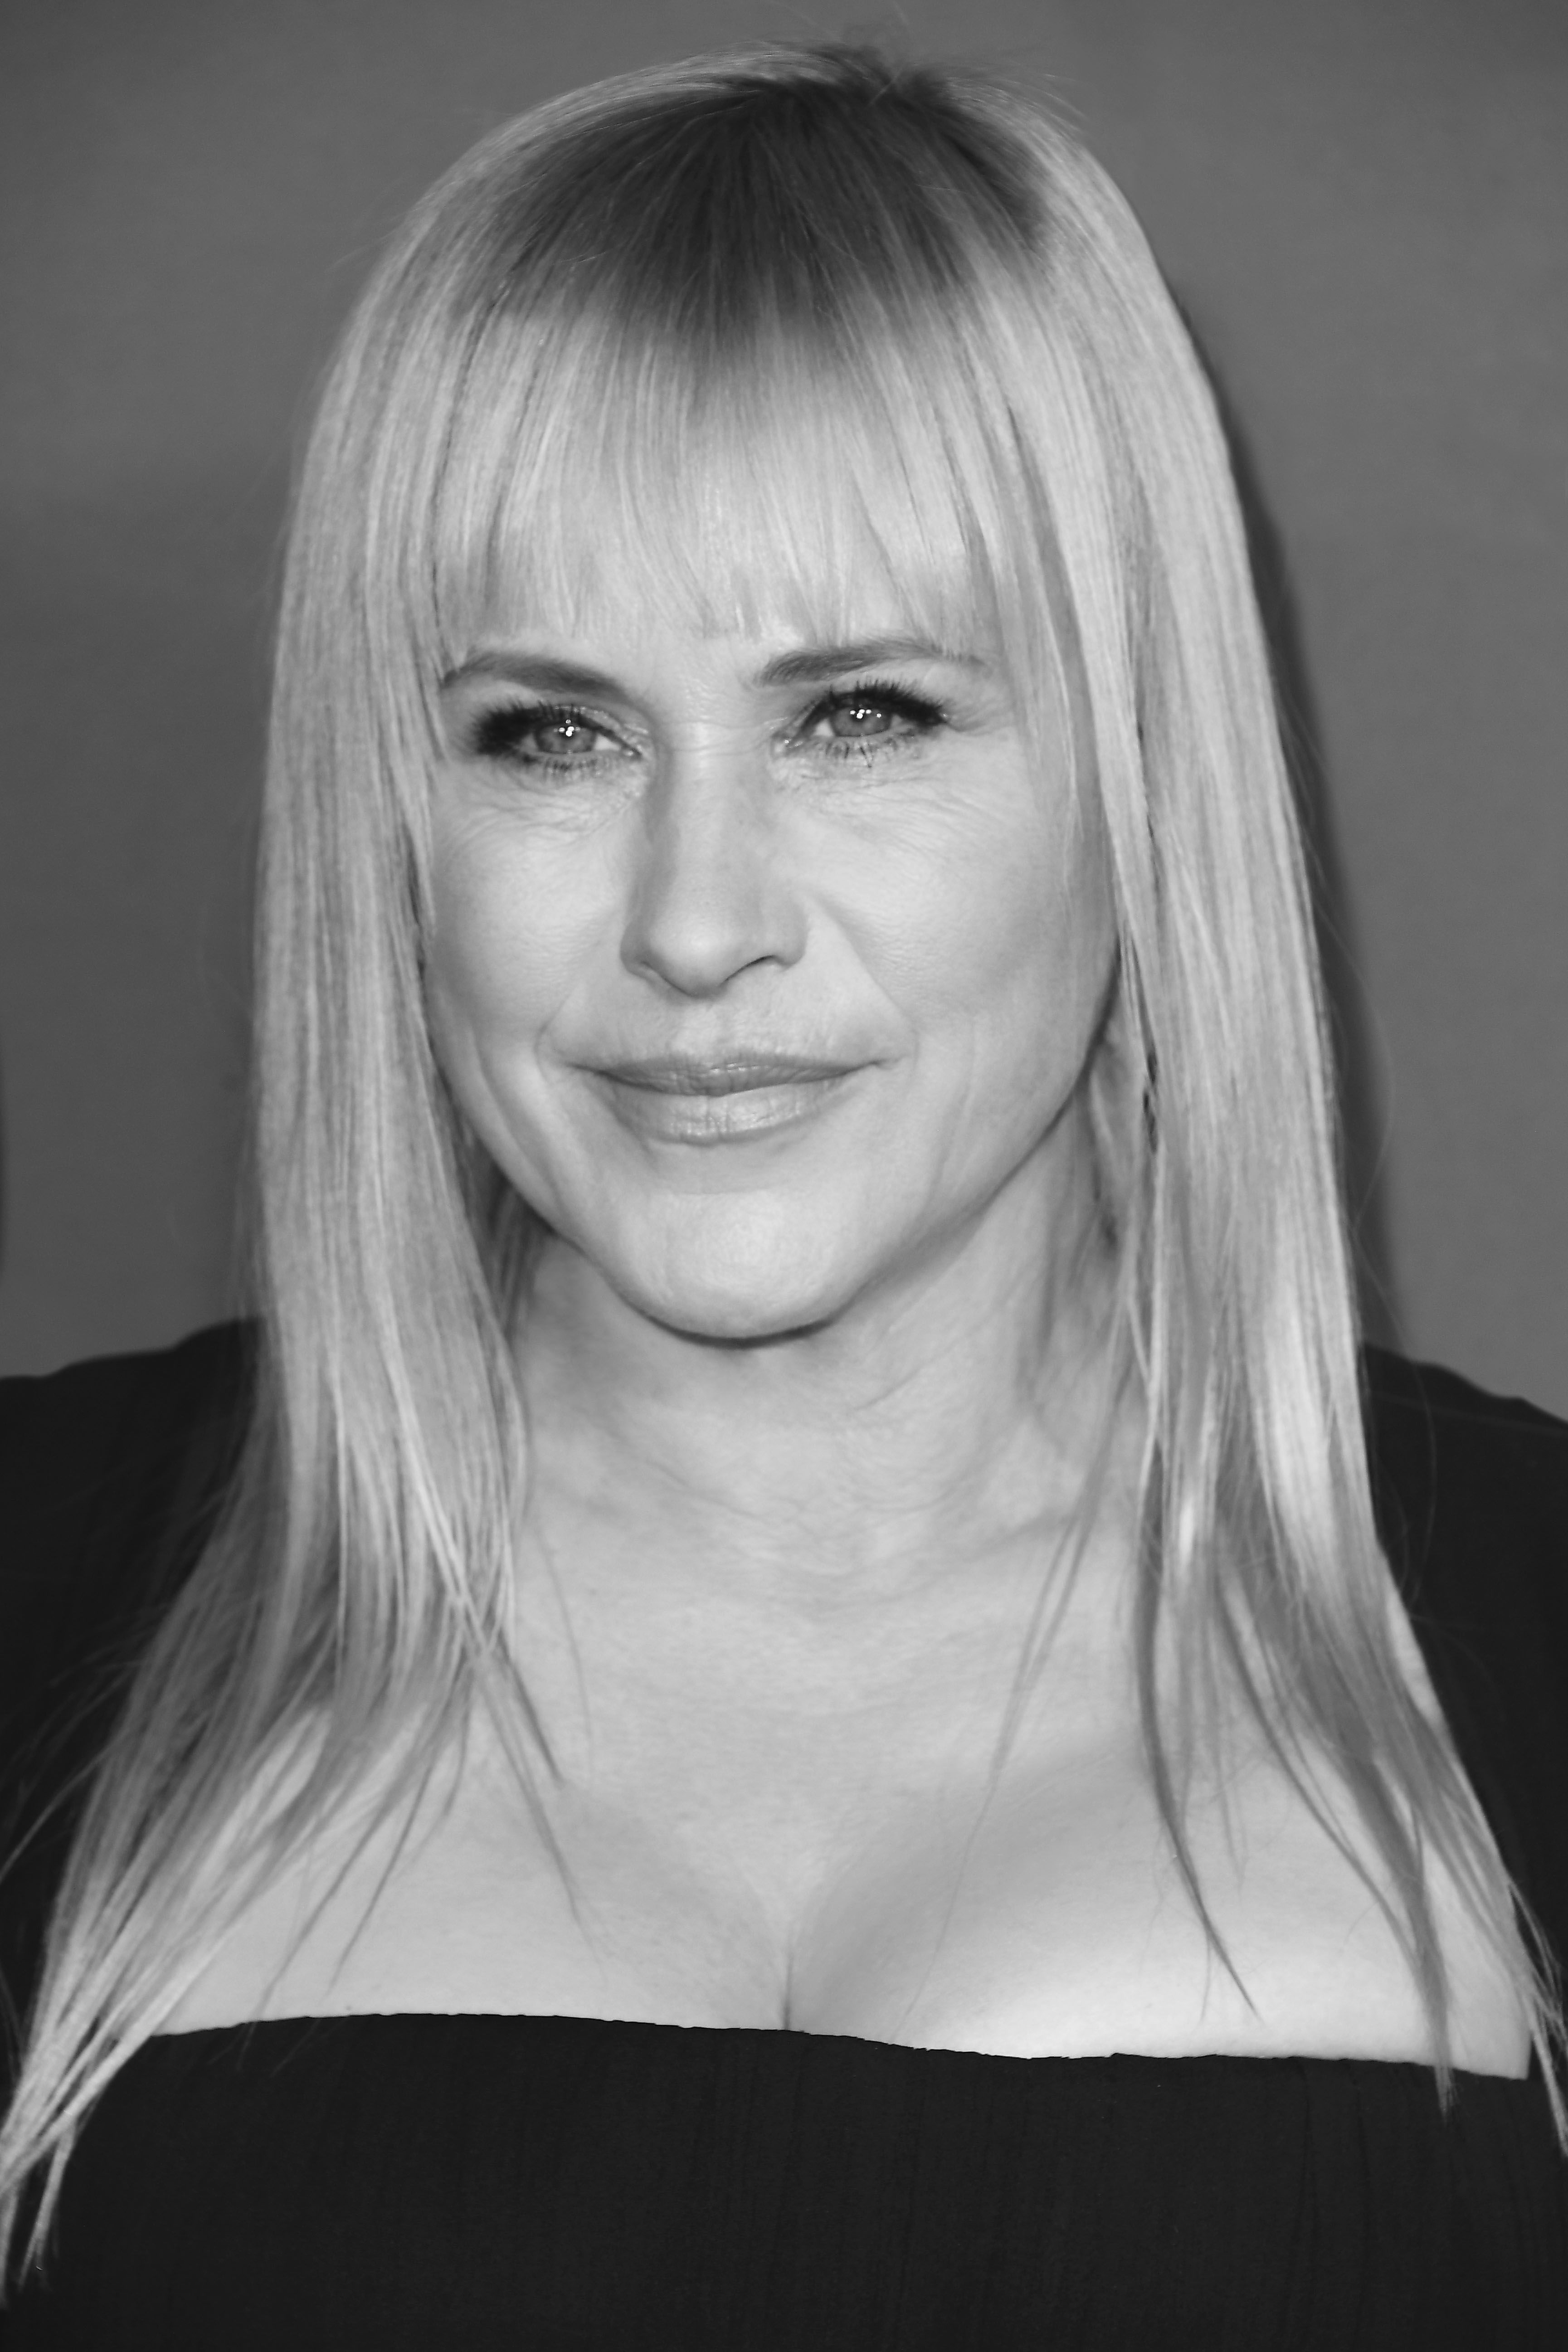 Patricia Arquette Admires State Politicians and Loves McDonalds' French Fries